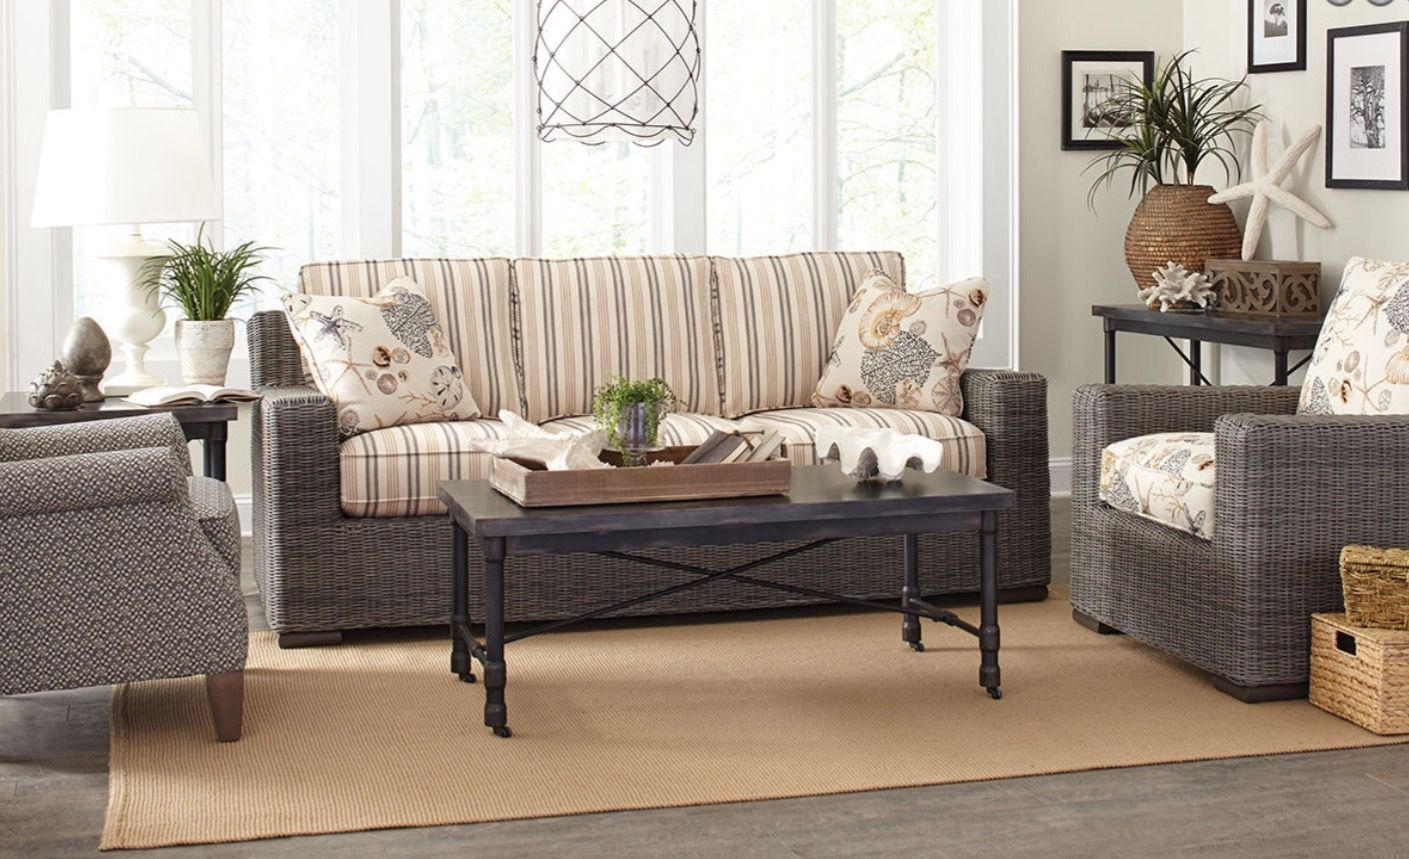 Paula Deen Wicker Furniture Manufactured By Craftmaster Furniture.  Comfortable, Beautiful And Perfect For Relaxing